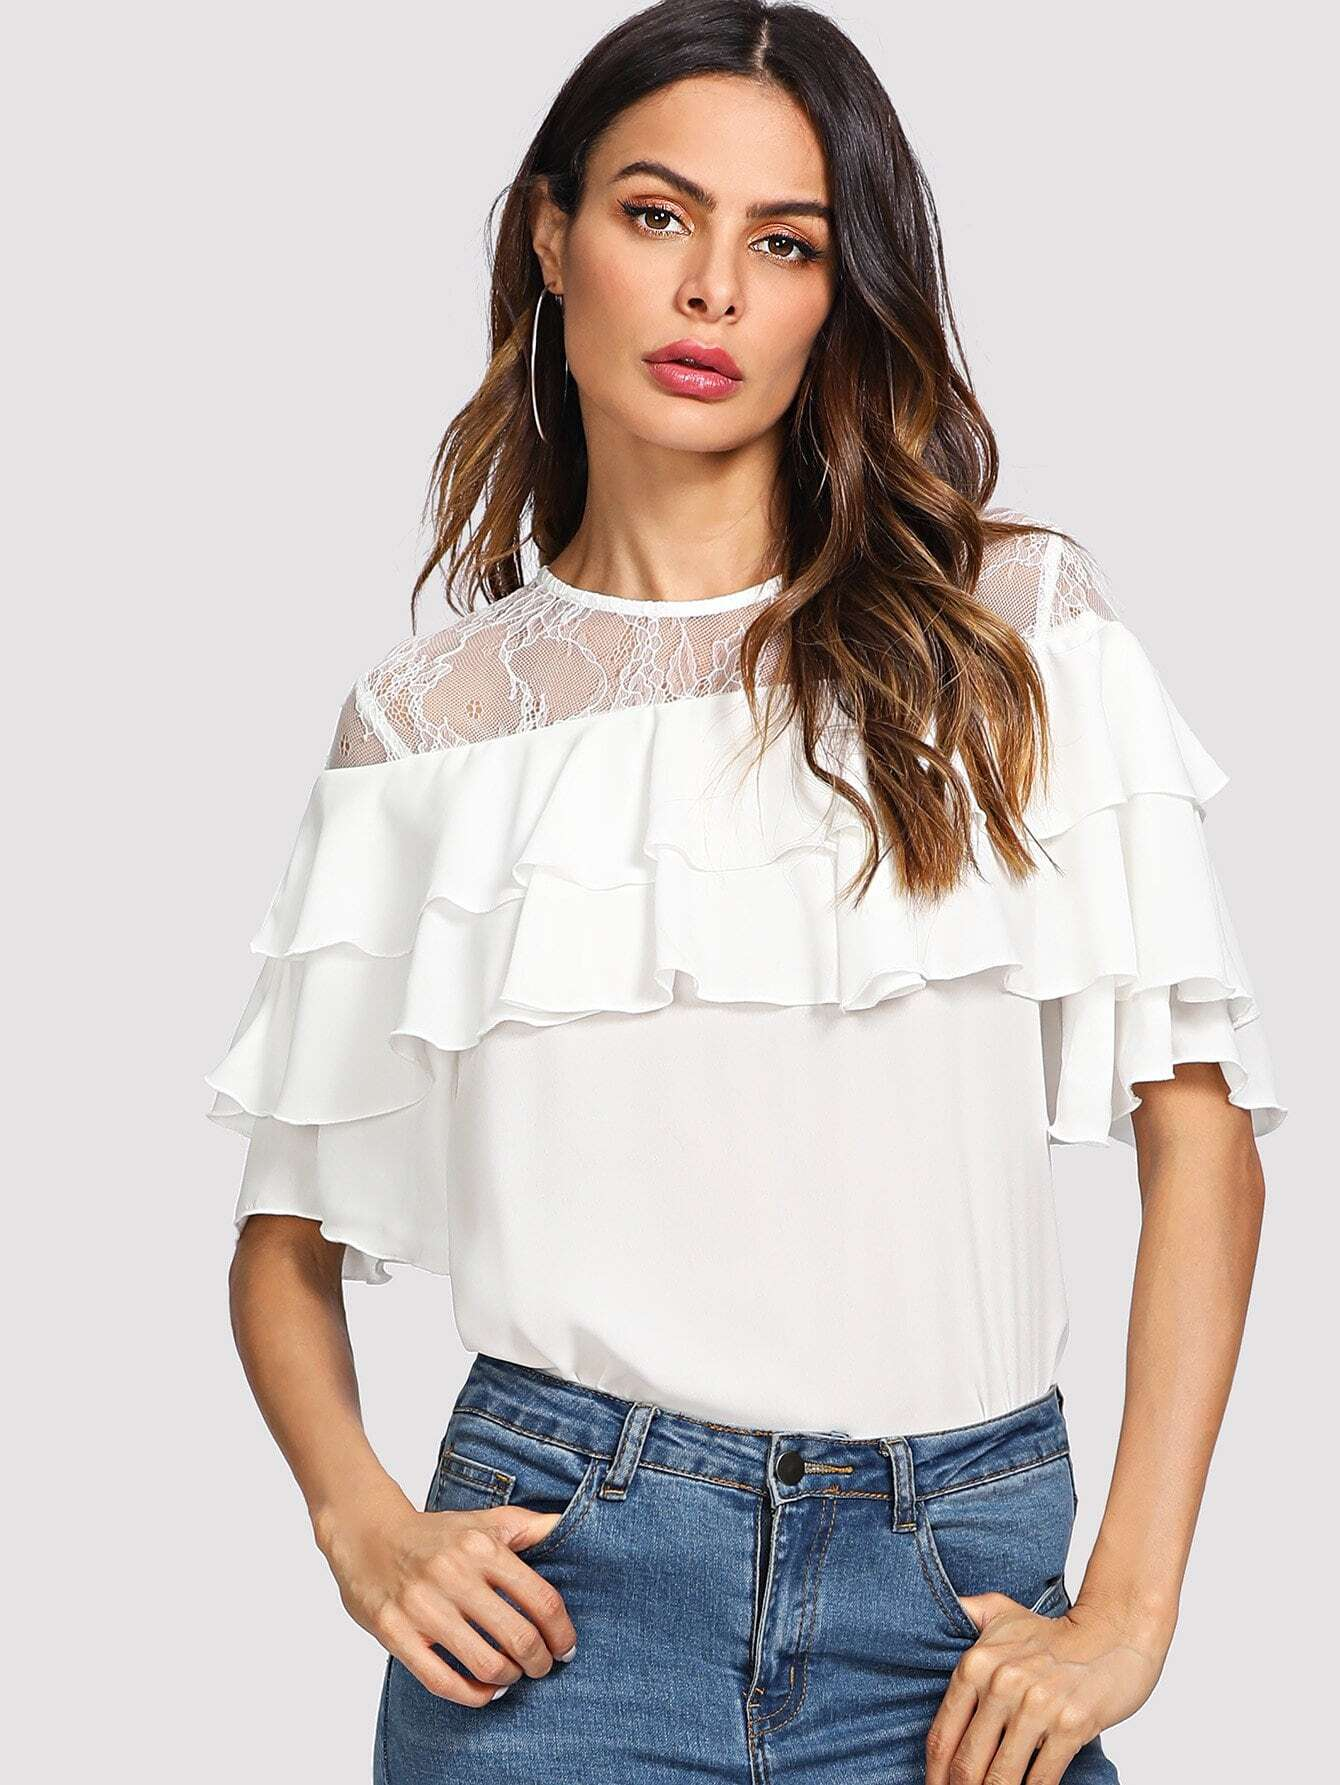 Lace Shoulder Layered Ruffle Top floral lace shoulder layered flounce top